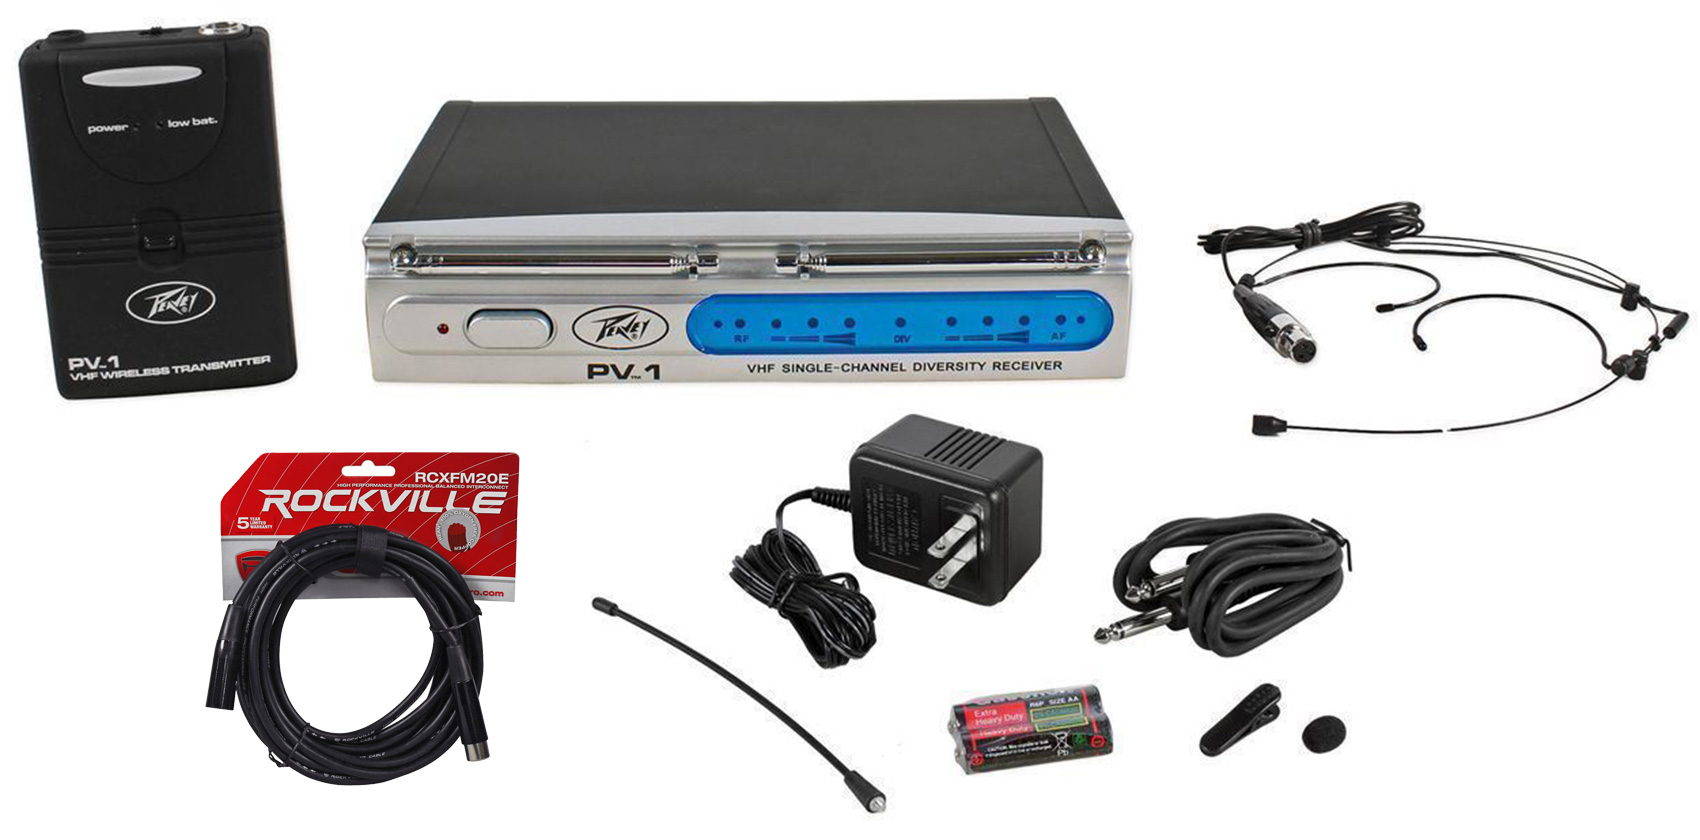 Peavey PV-1 U1 BHS 906.00MHZ UHF Wireless Headset Microphone System + XLR Cables by Peavey